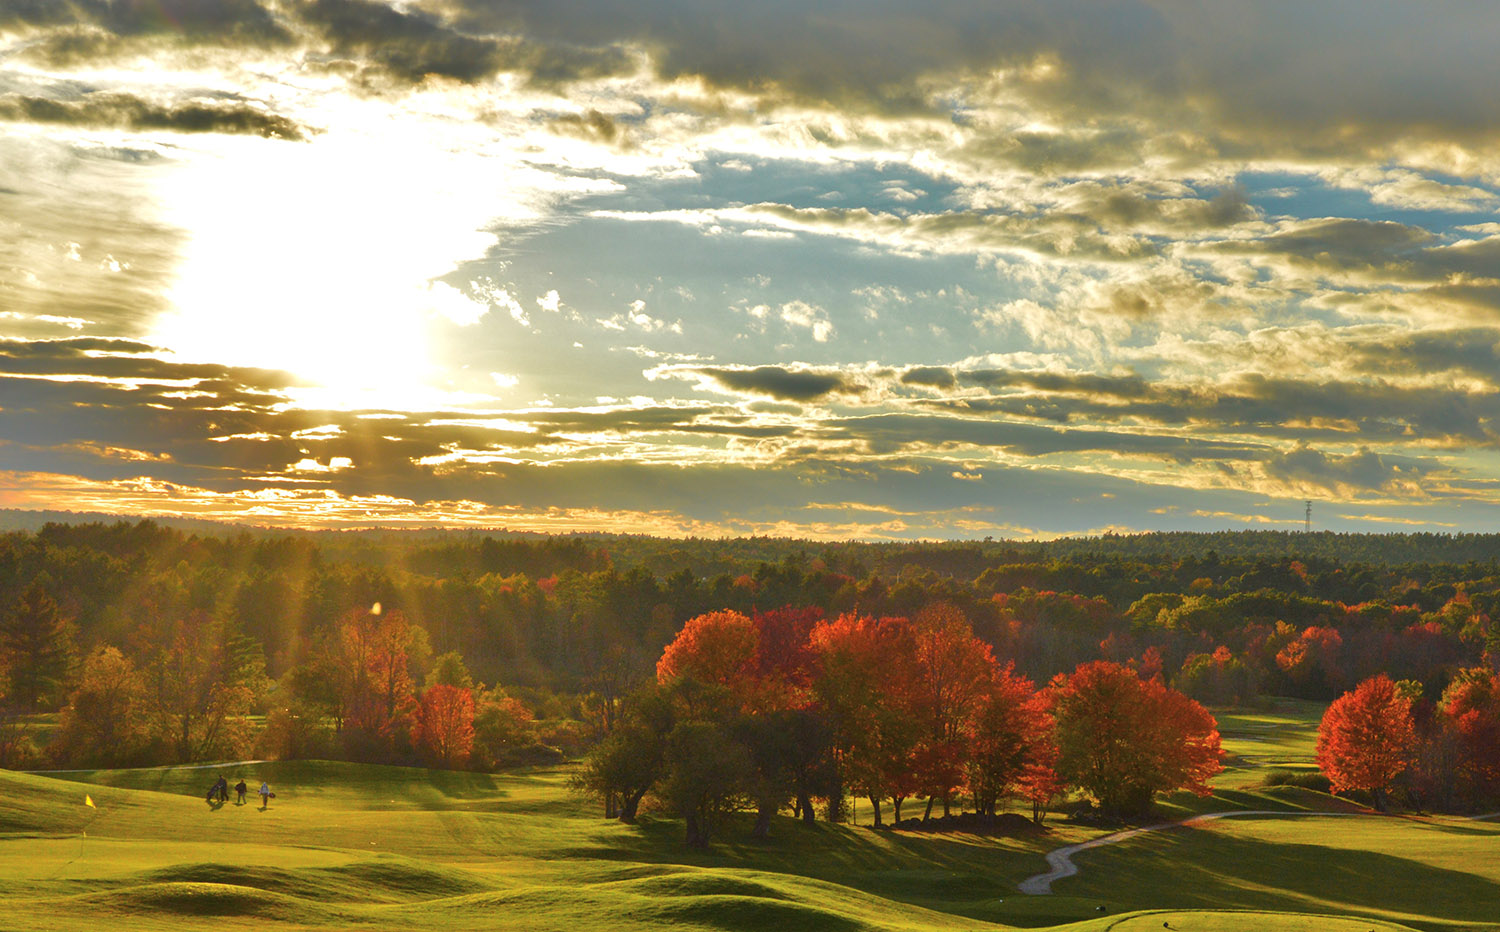 To many of us, golf courses are indeed hallowed grounds, albeit with profanities, and the rays look heaven-sent on the 18th hole at Gray's Spring Meadows, where Yarmouth's Brian Lovering was finishing a round.